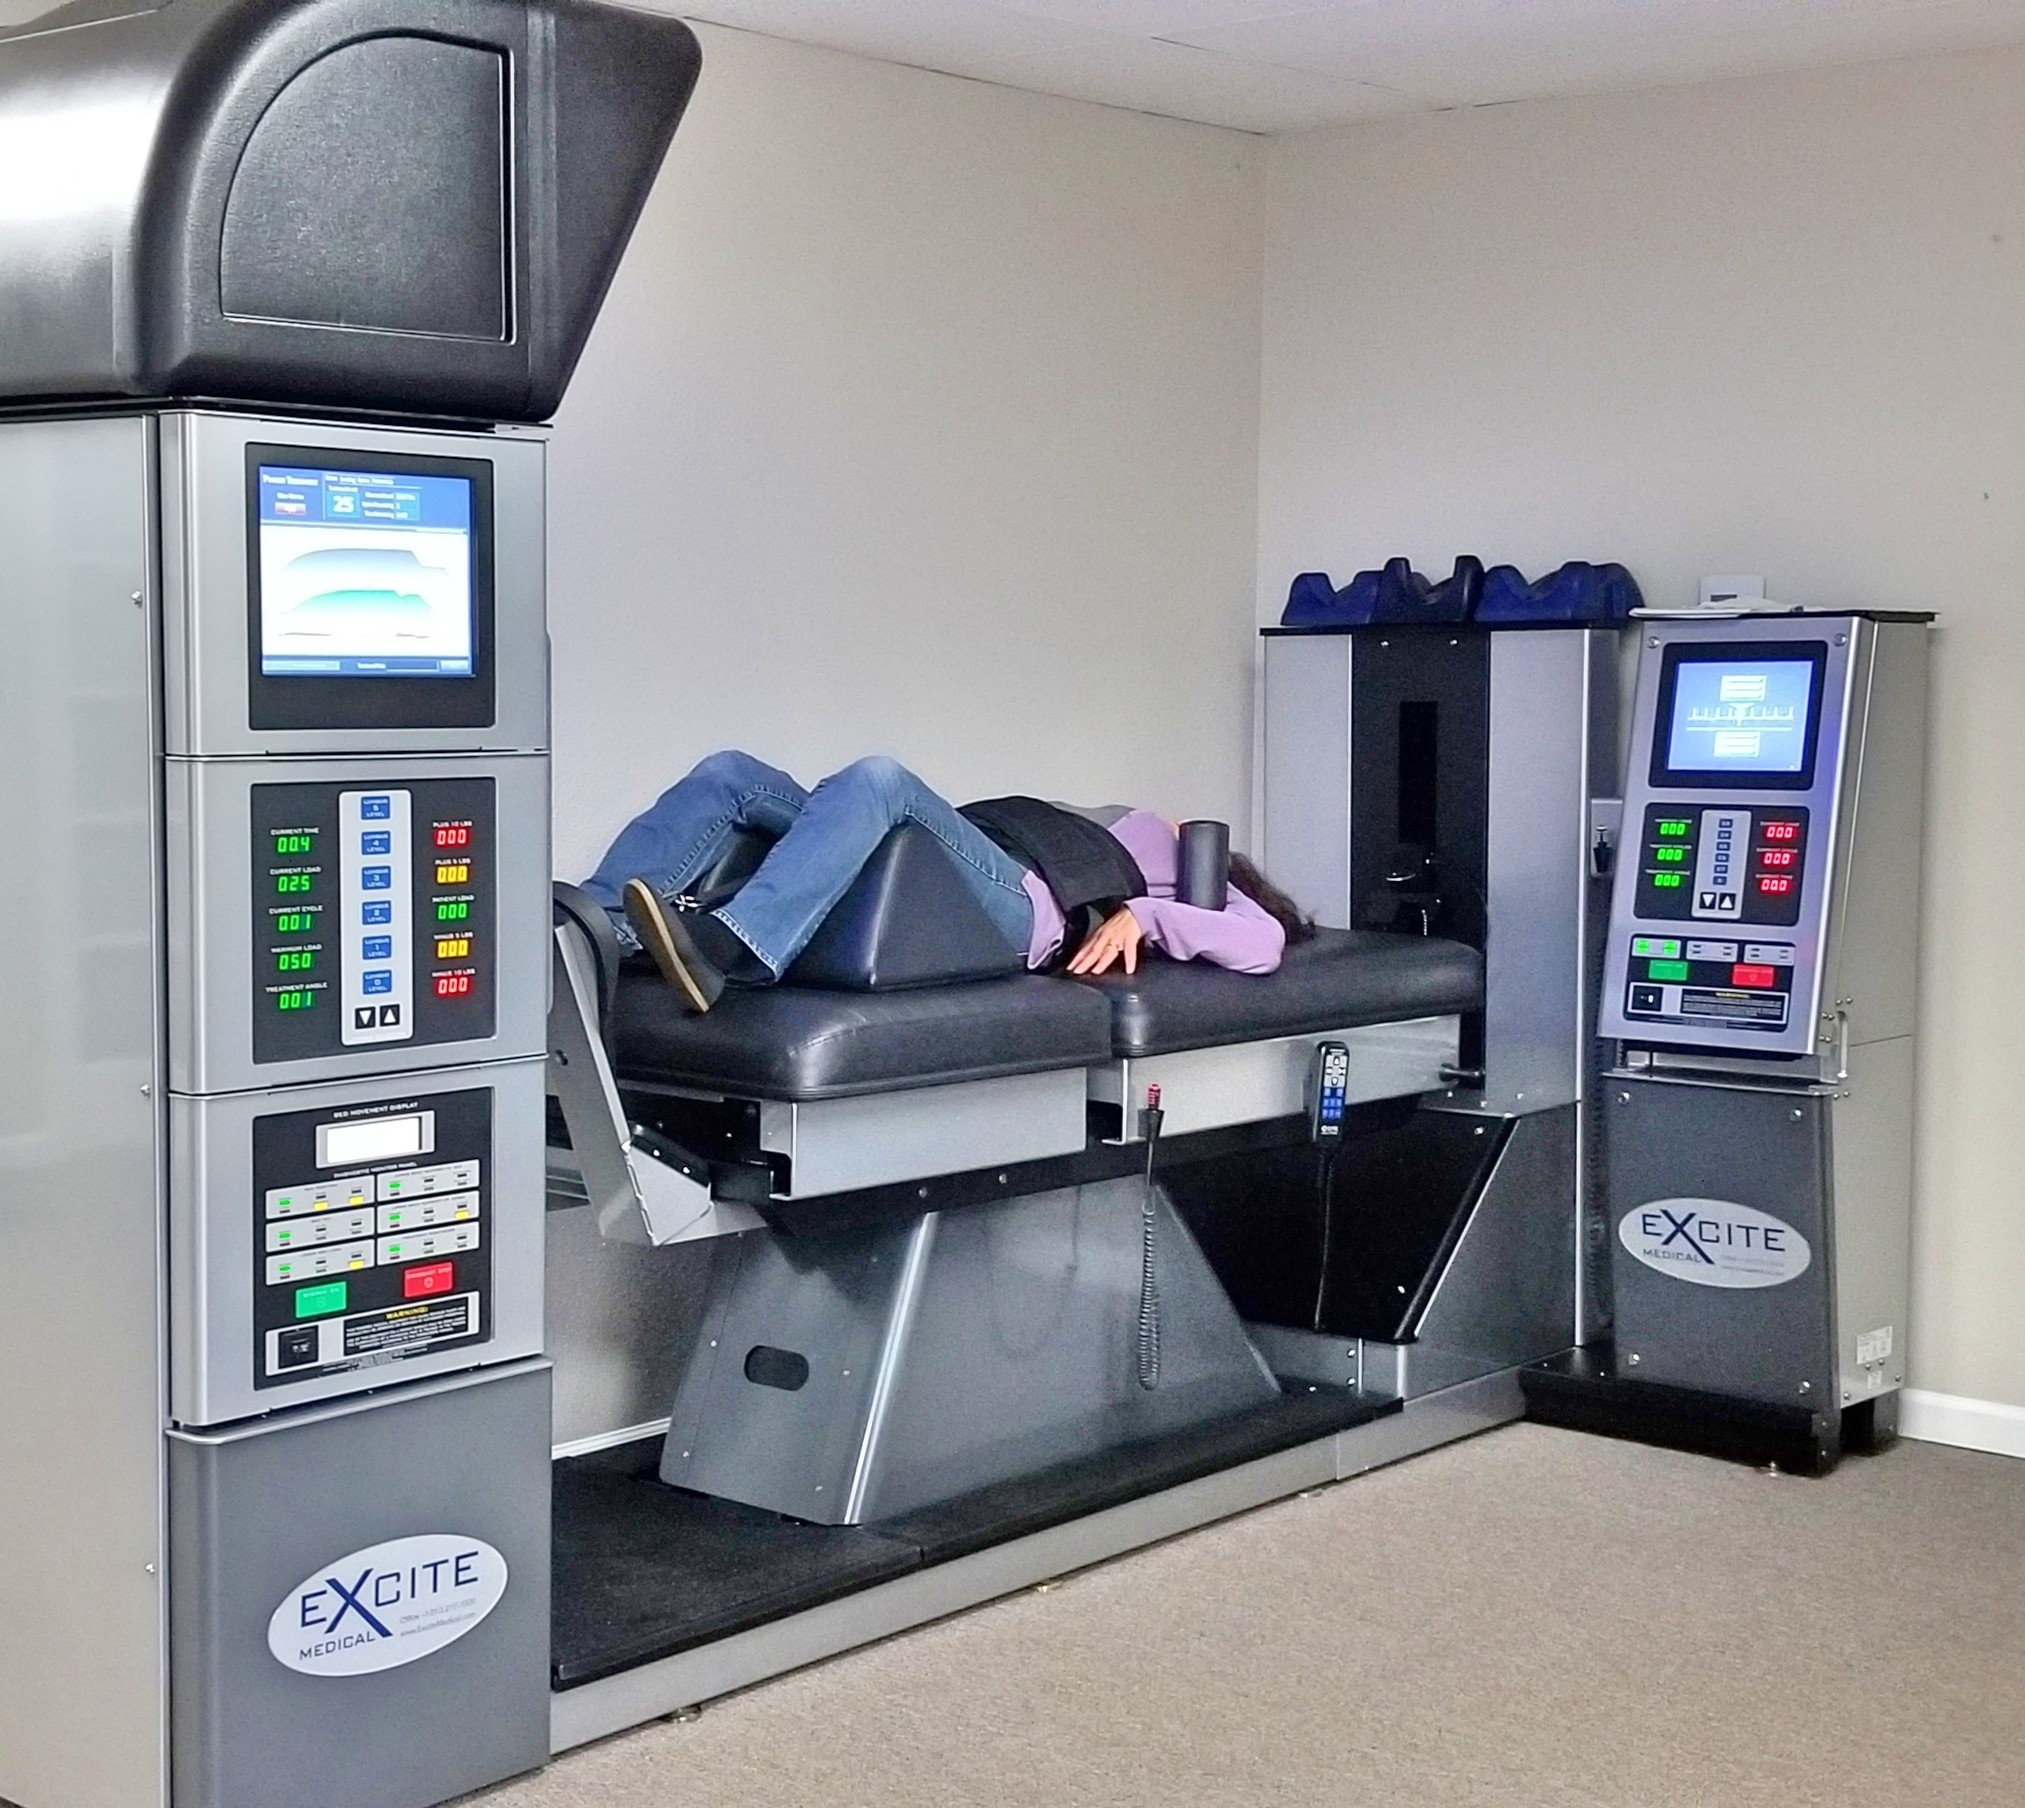 Lower Back Pain & Herniated Disc Treatment with Spinal Decompression Therapy Machine